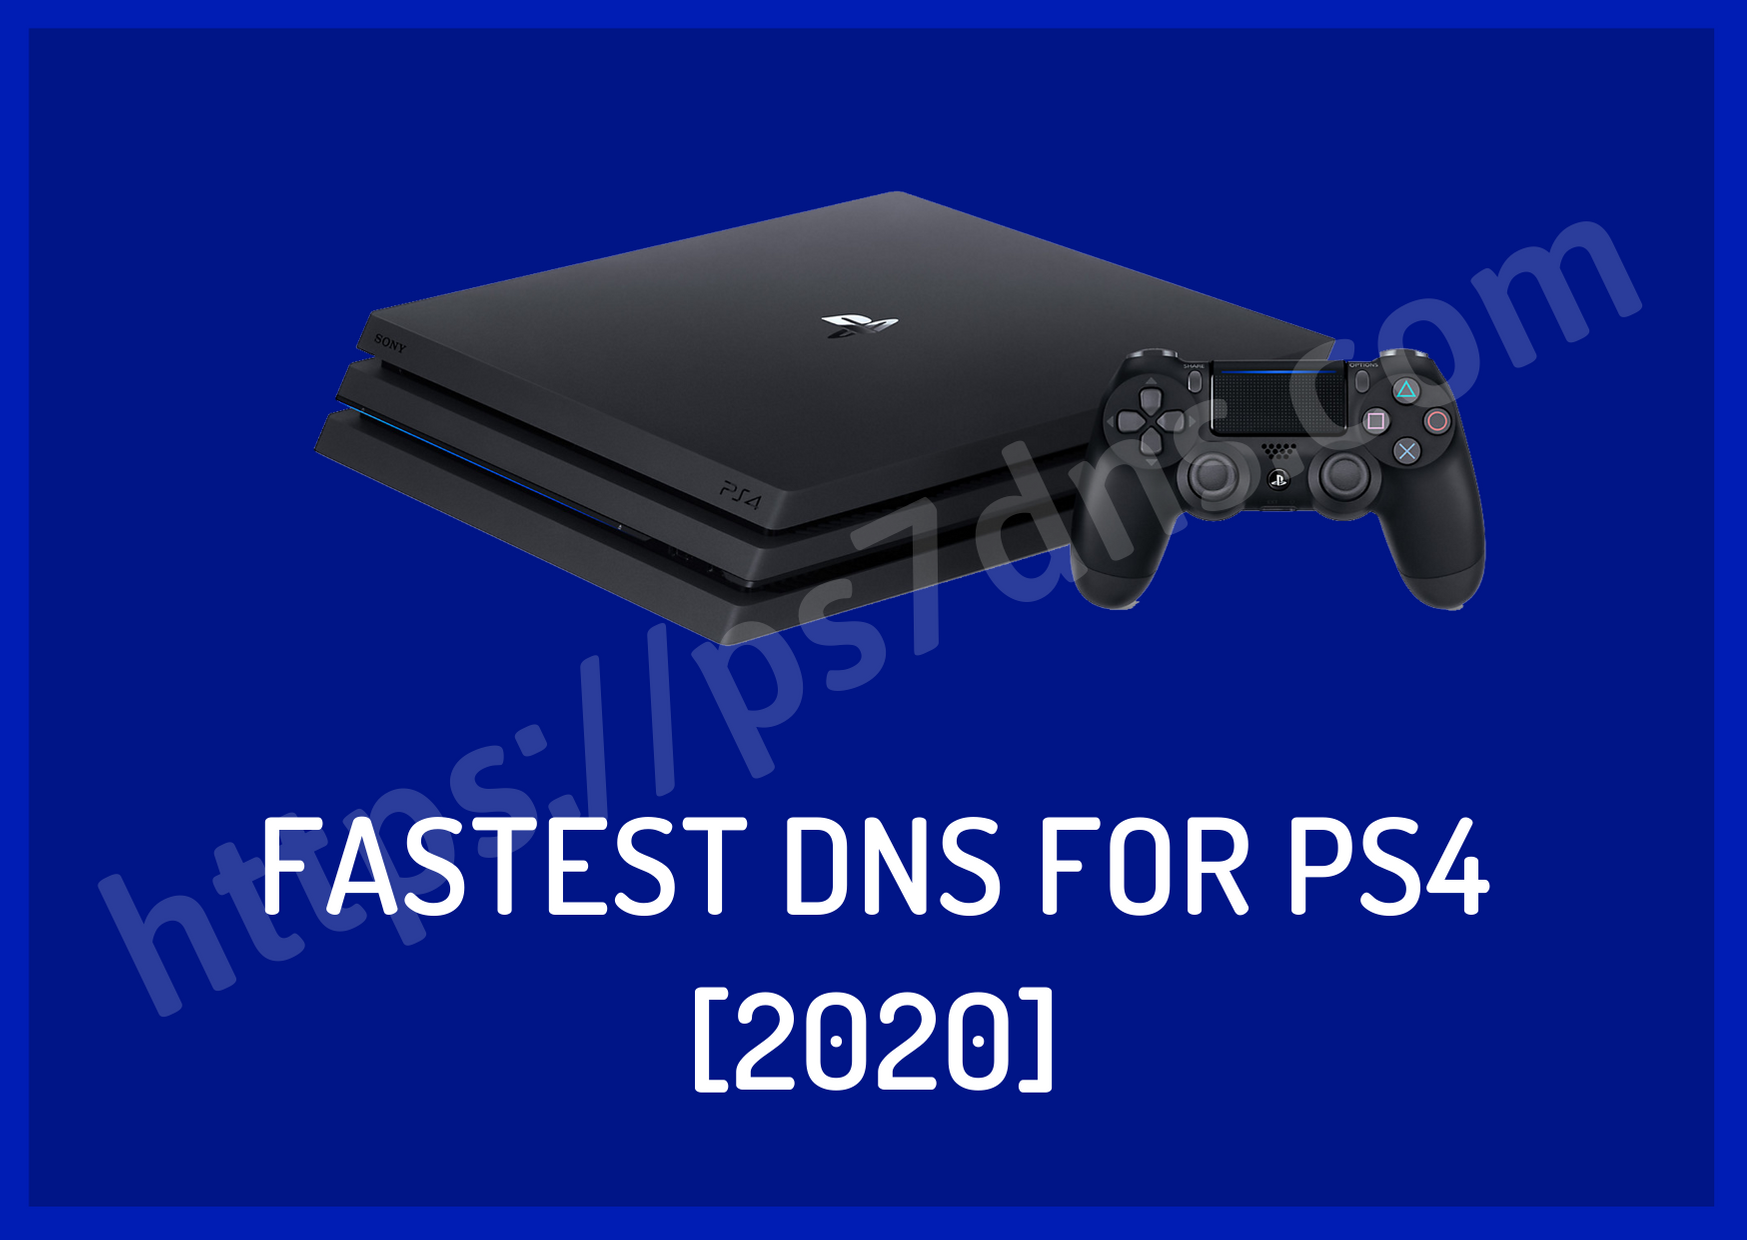 Fastest DNS for PS4 [2020]